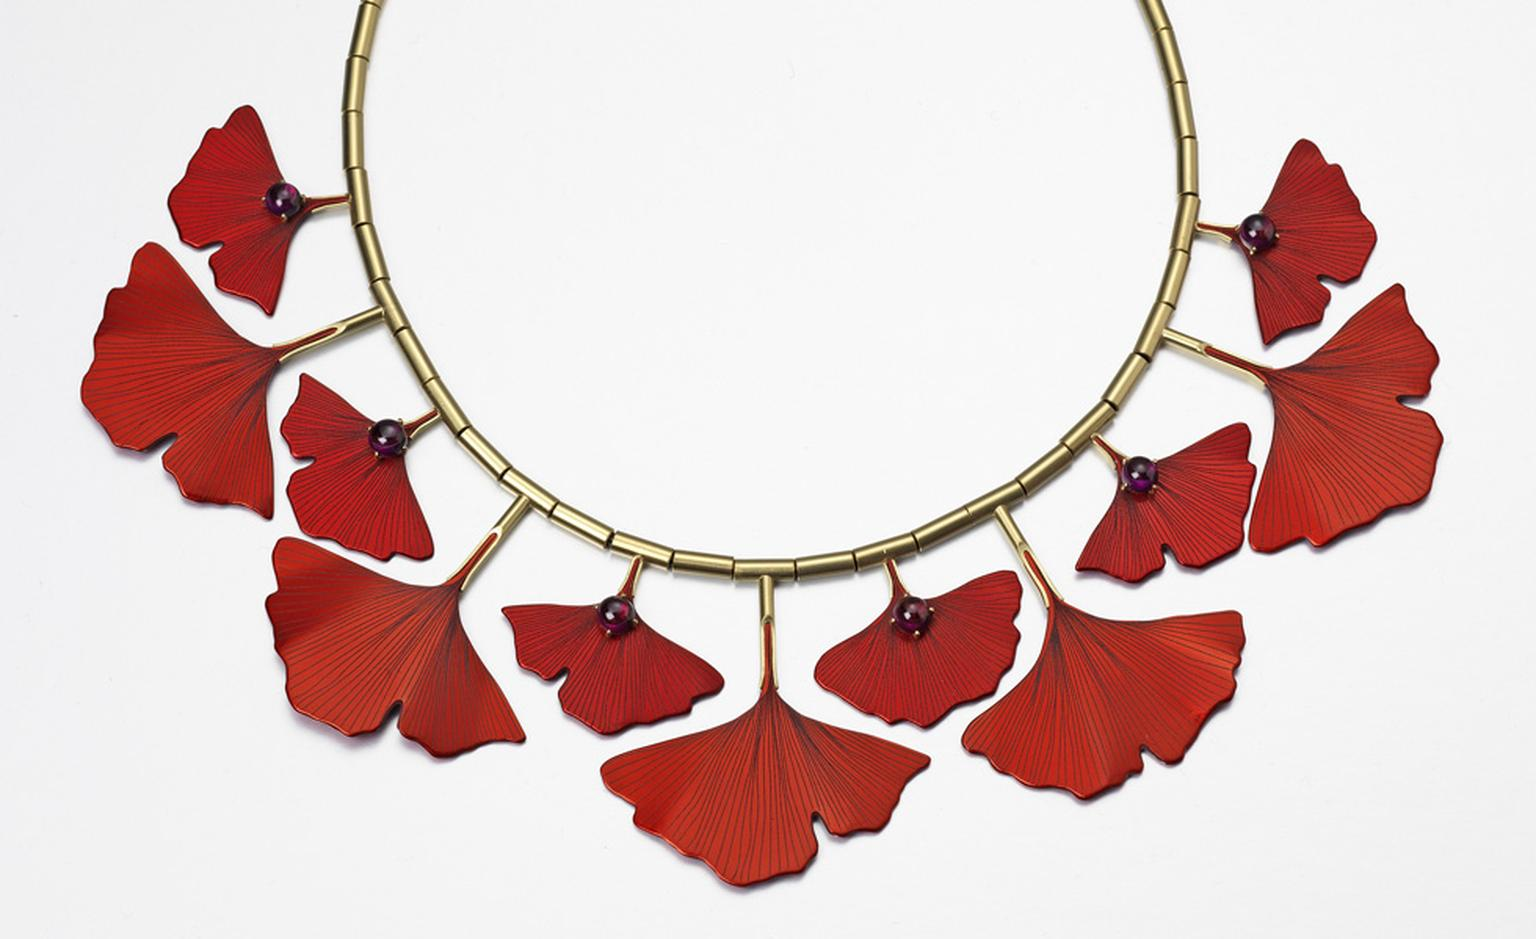 Ginkgo Necklace by Roger Doyle made from 18ct yellow gold set with Rhodonite garnets mounted on photo etched red anodized aluminium.   £3500